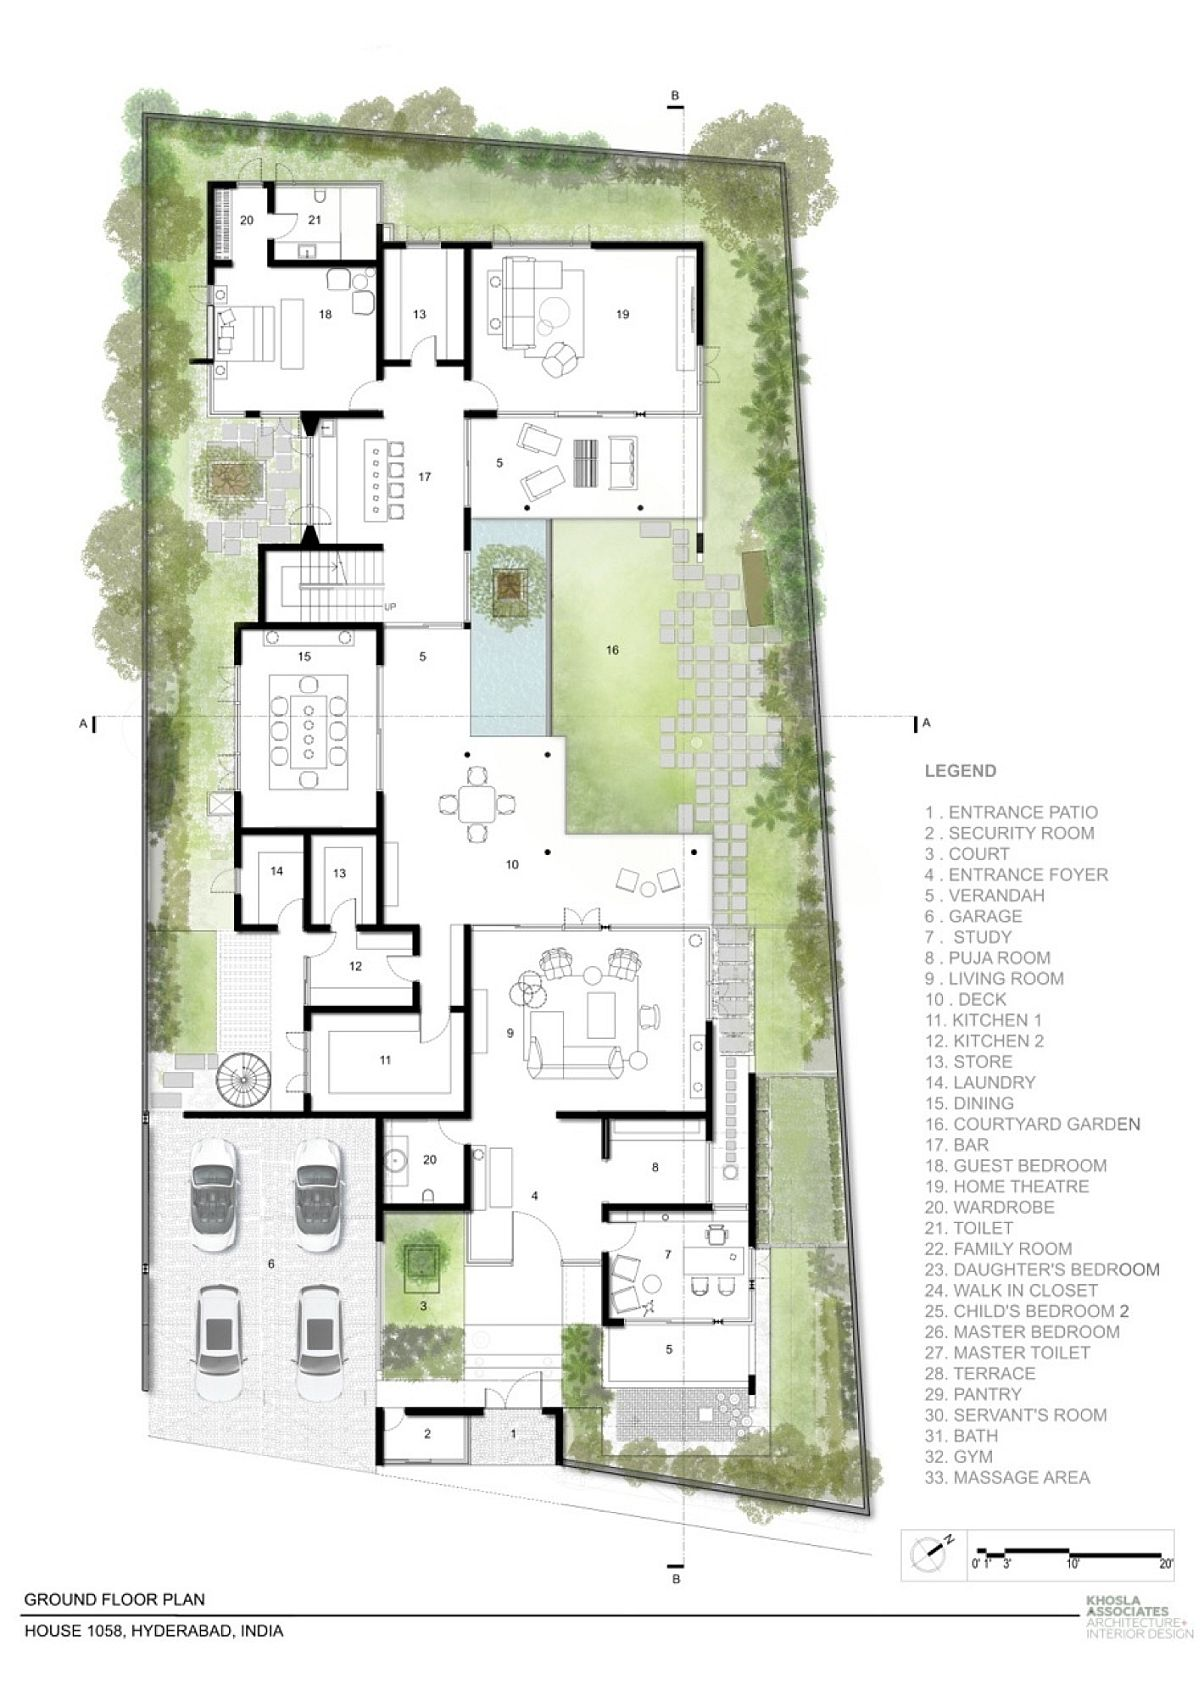 Ground level floor plan of contemporary residence in Hyderabad